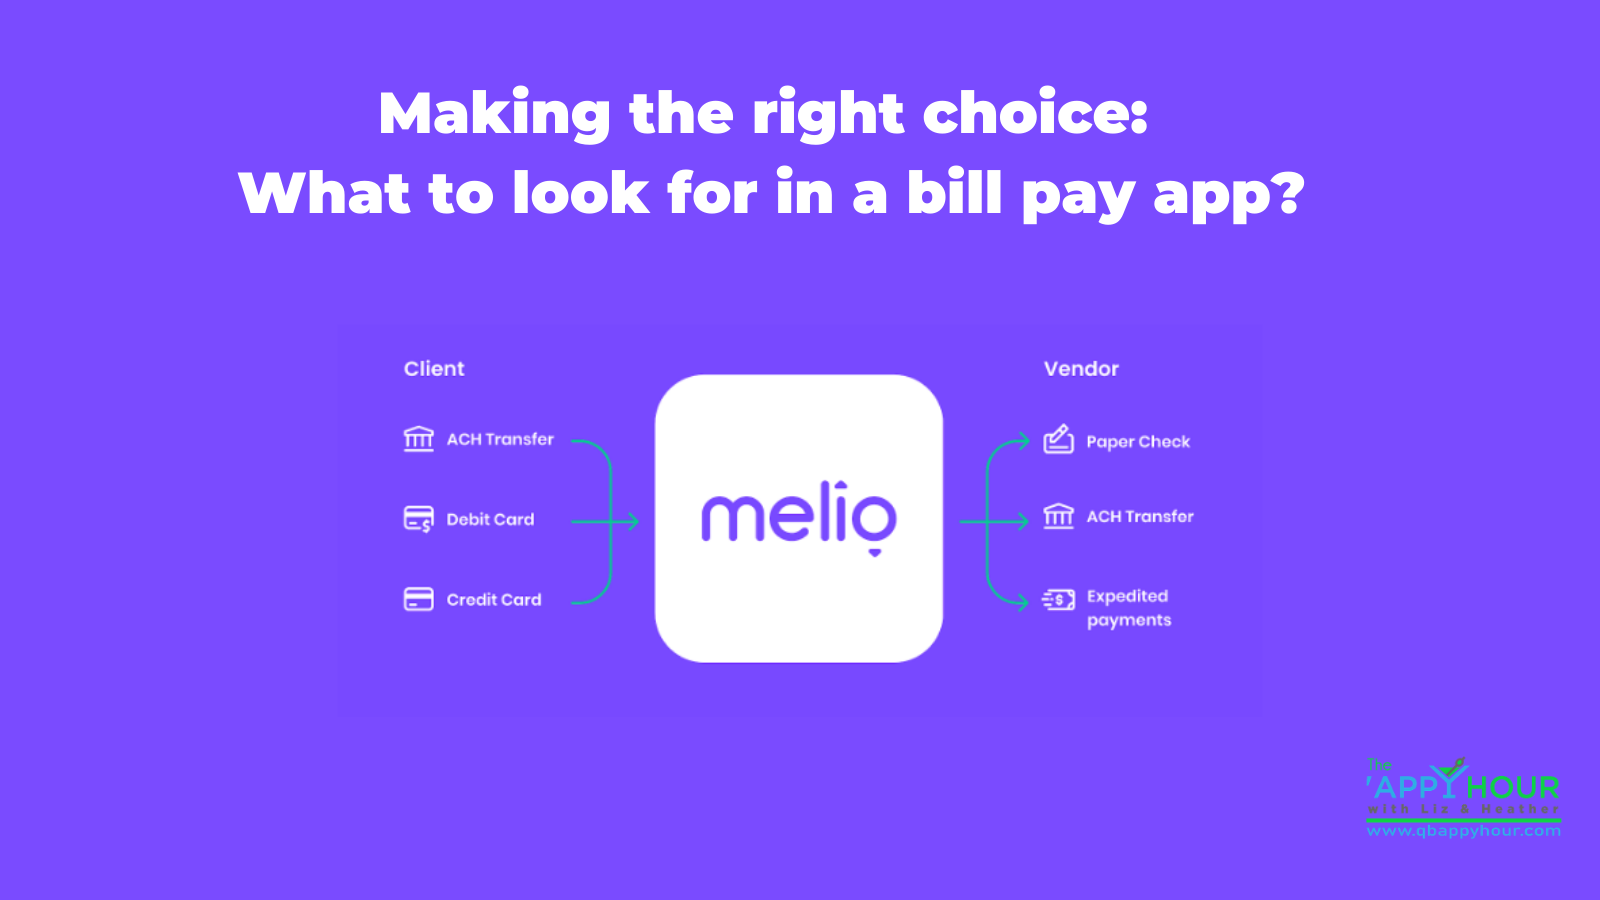 Making the right choice: what to look for in a bill pay app?